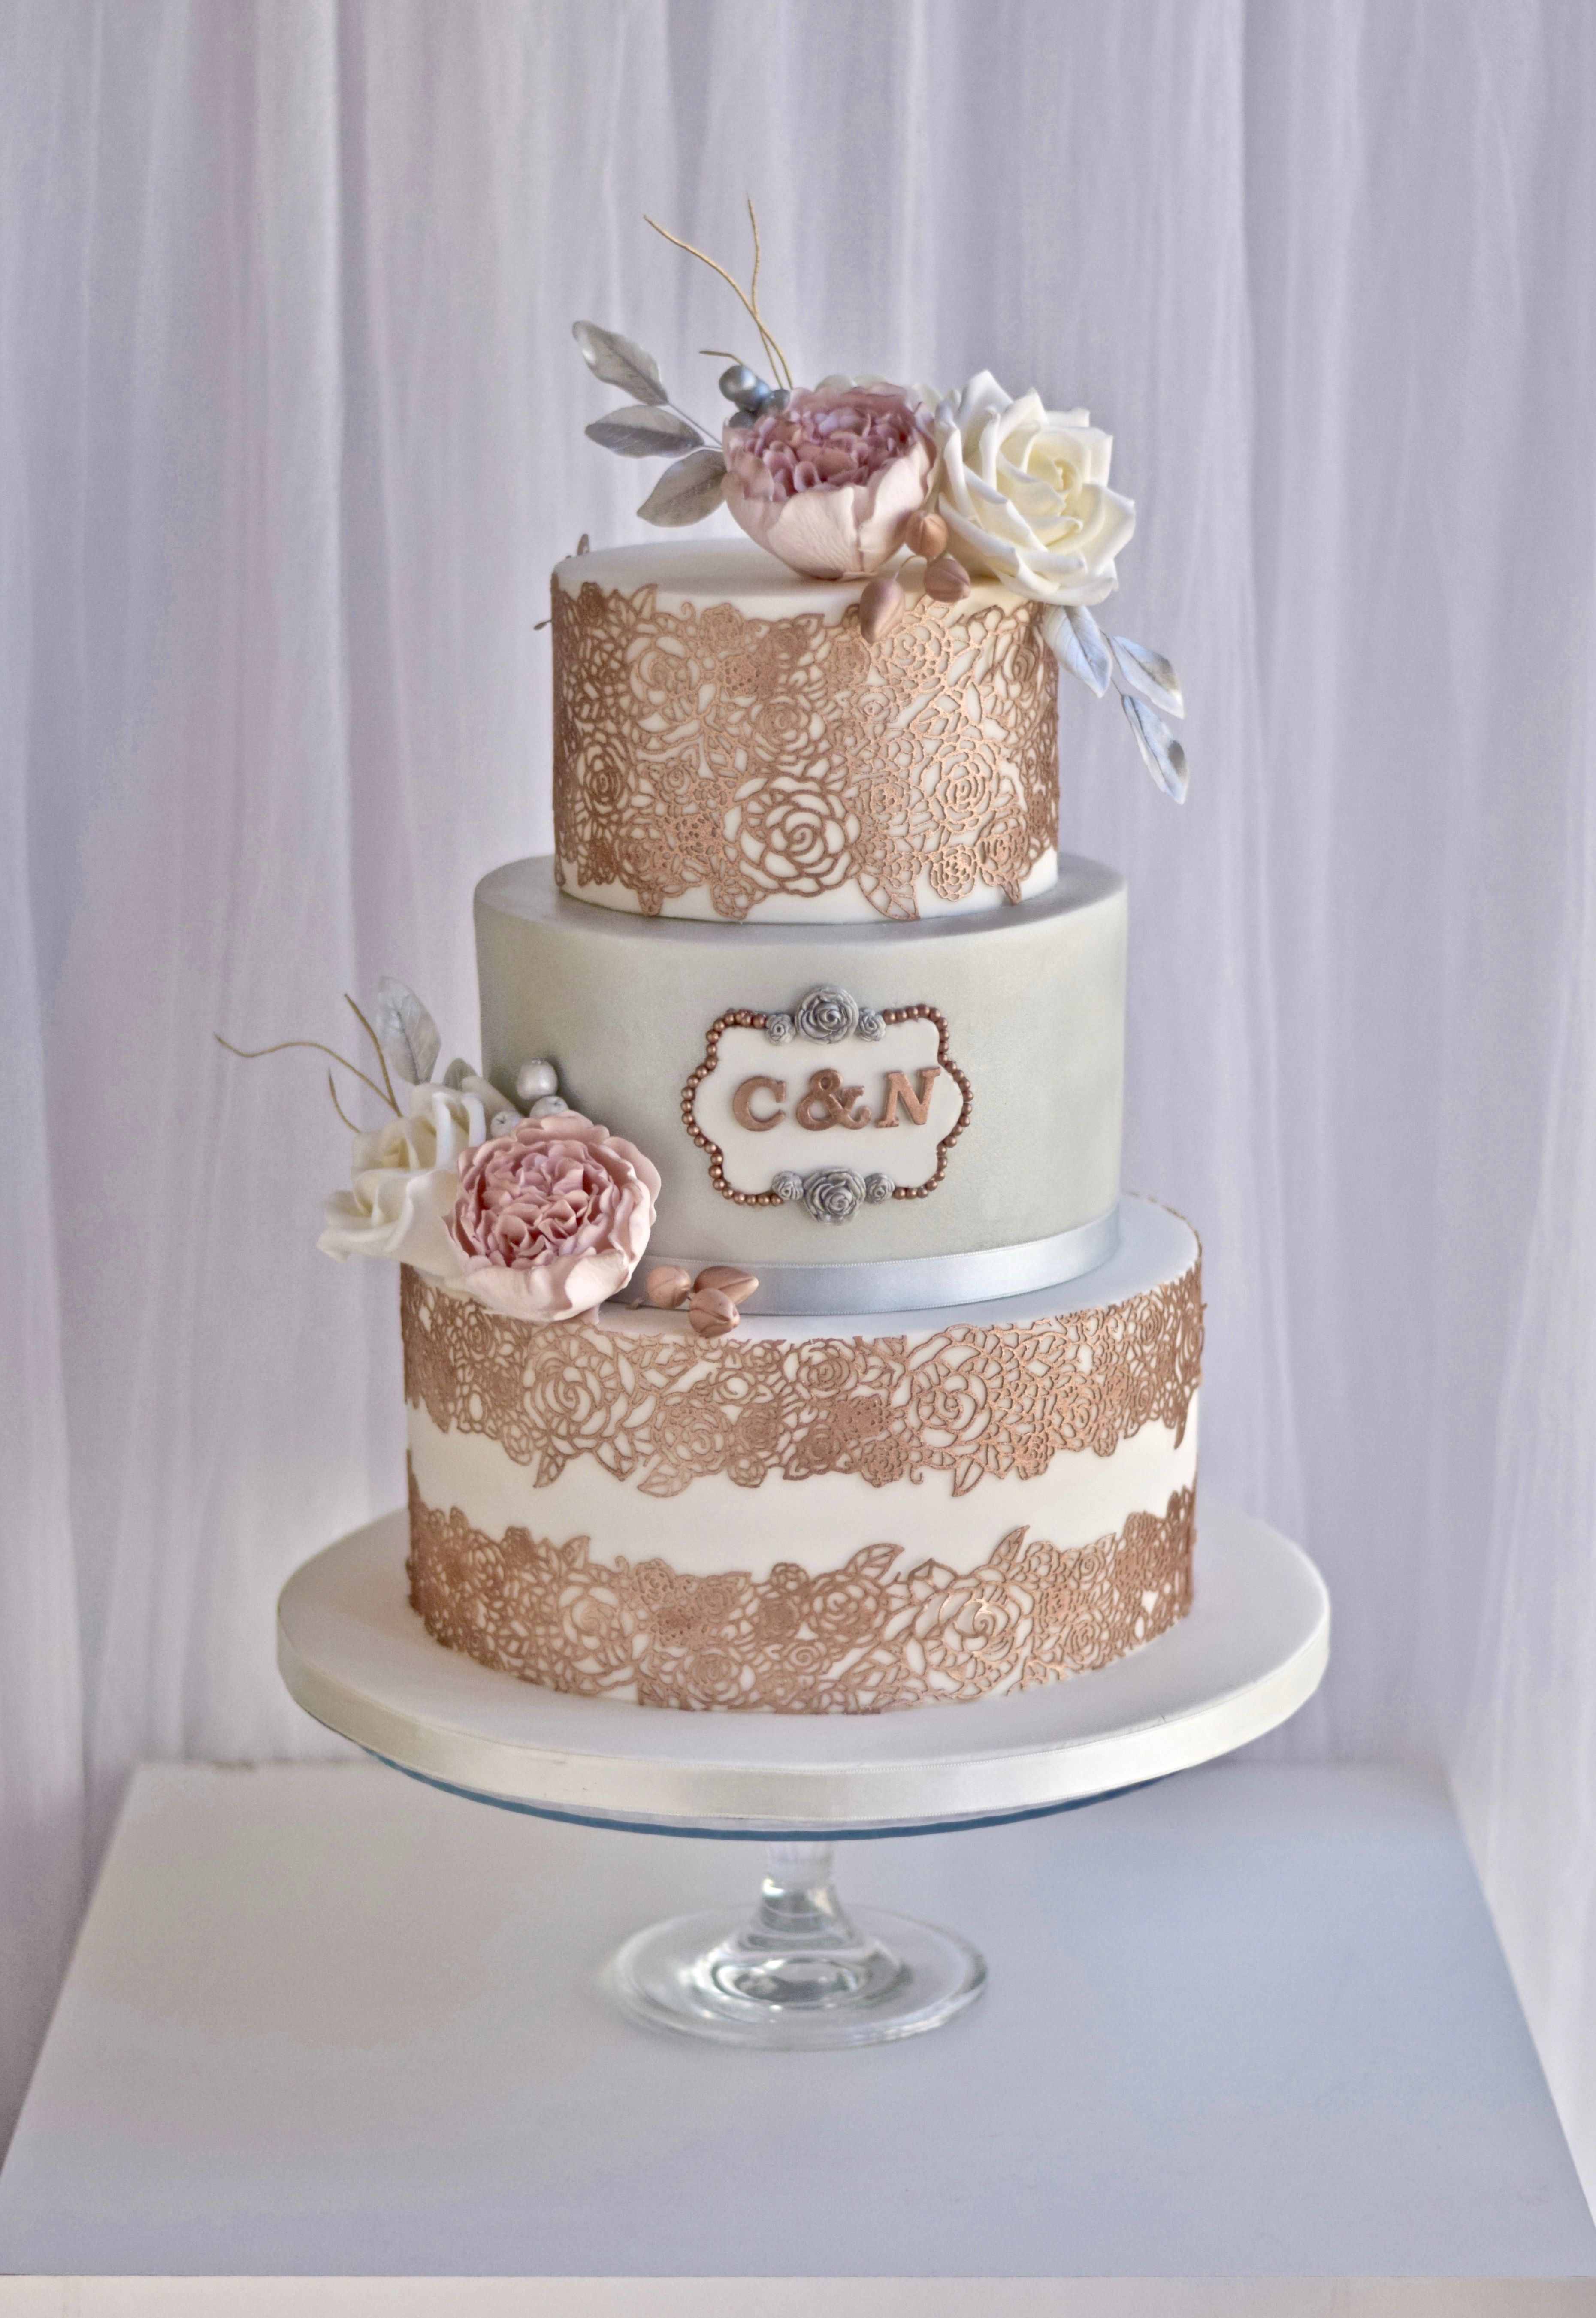 Elegant 3 Tier Rose Gold Wedding Cake With Sugar Peonies And Roses